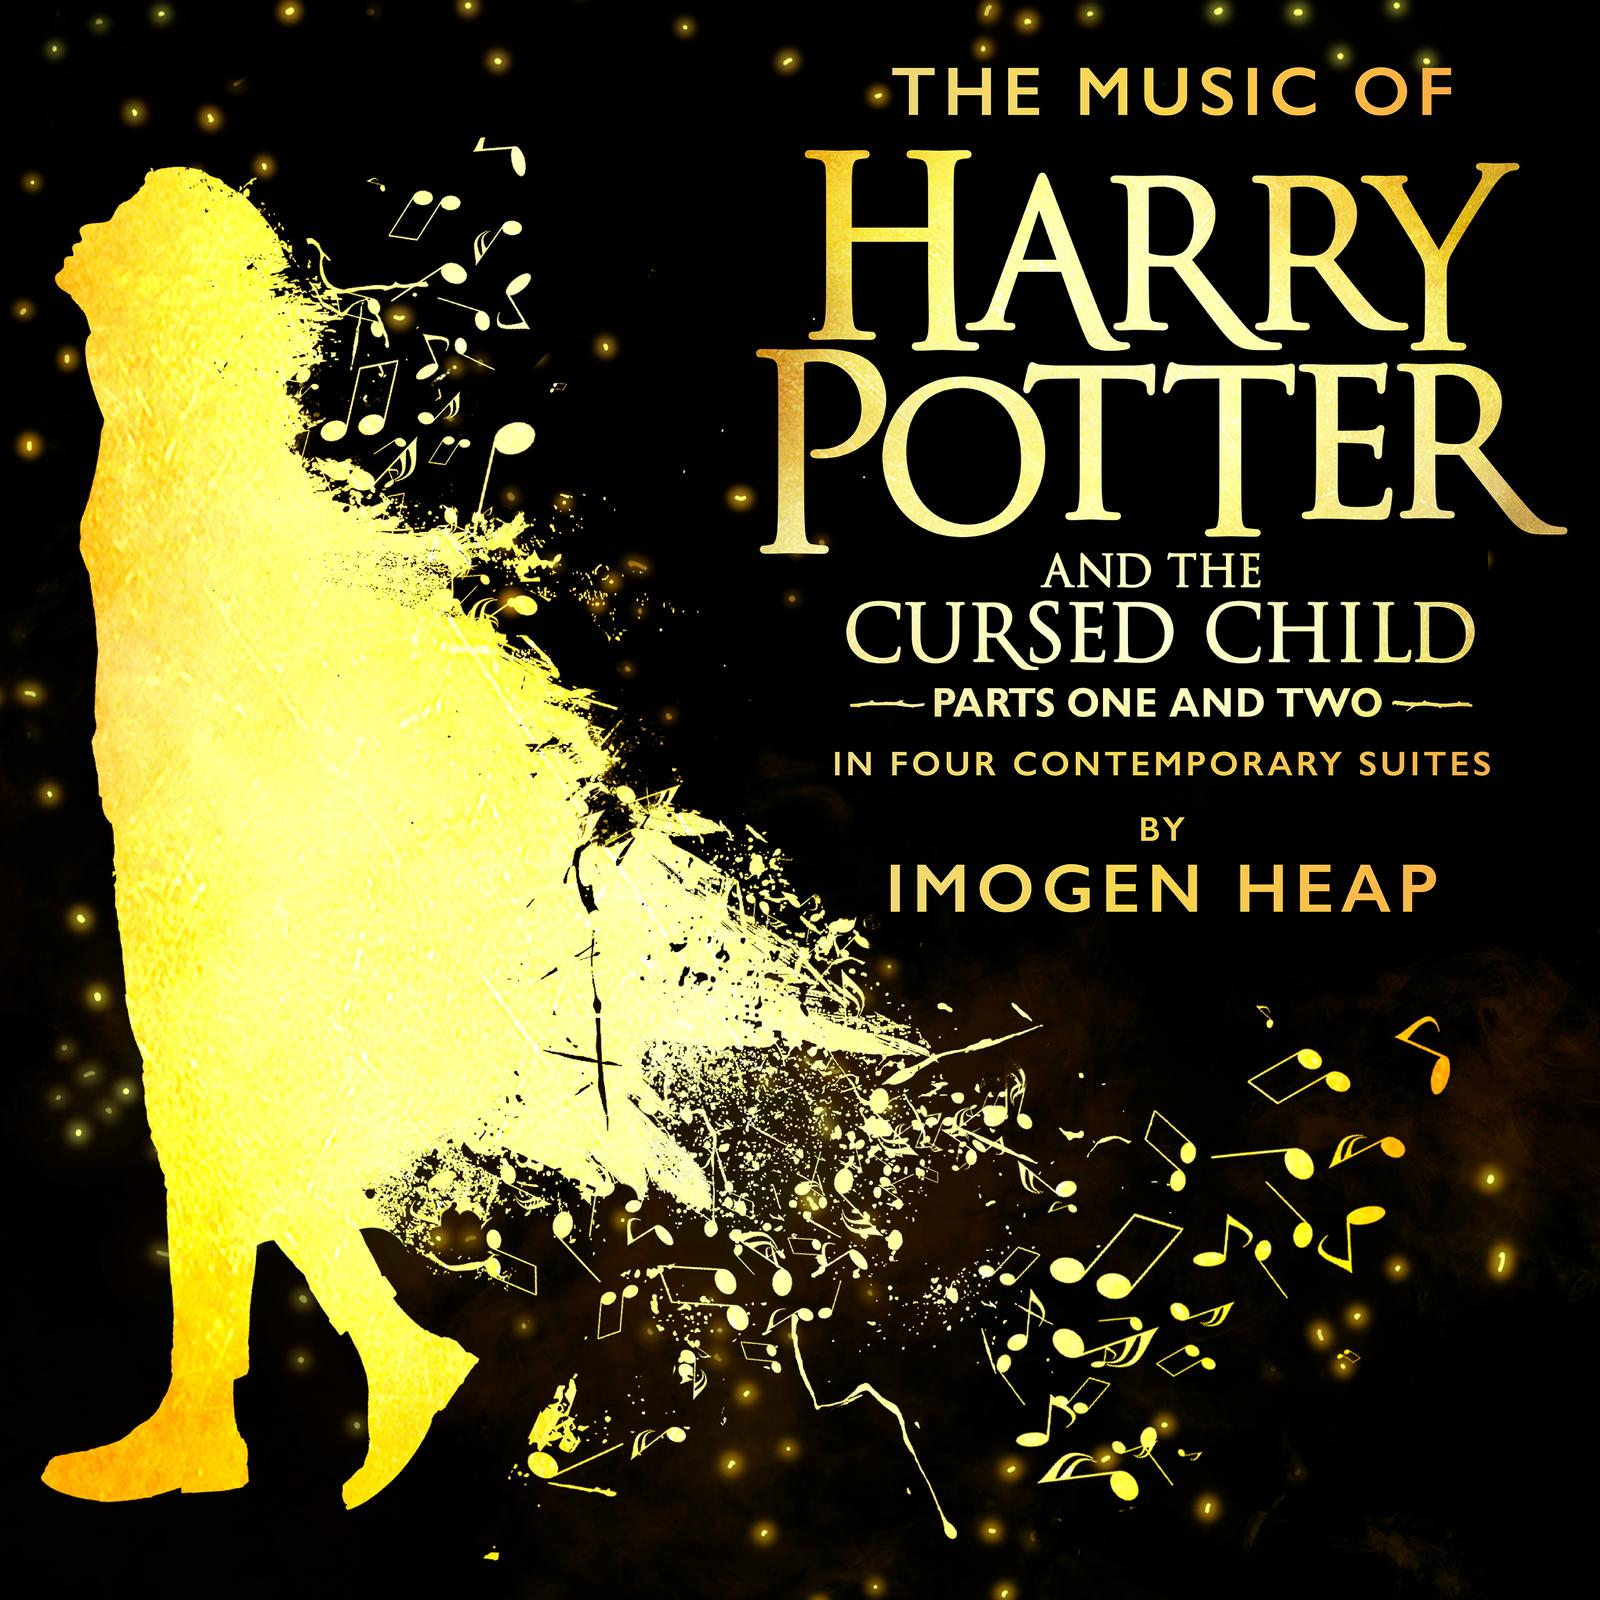 Album Artwork for The Music of Harry Potter and the Cursed Child.